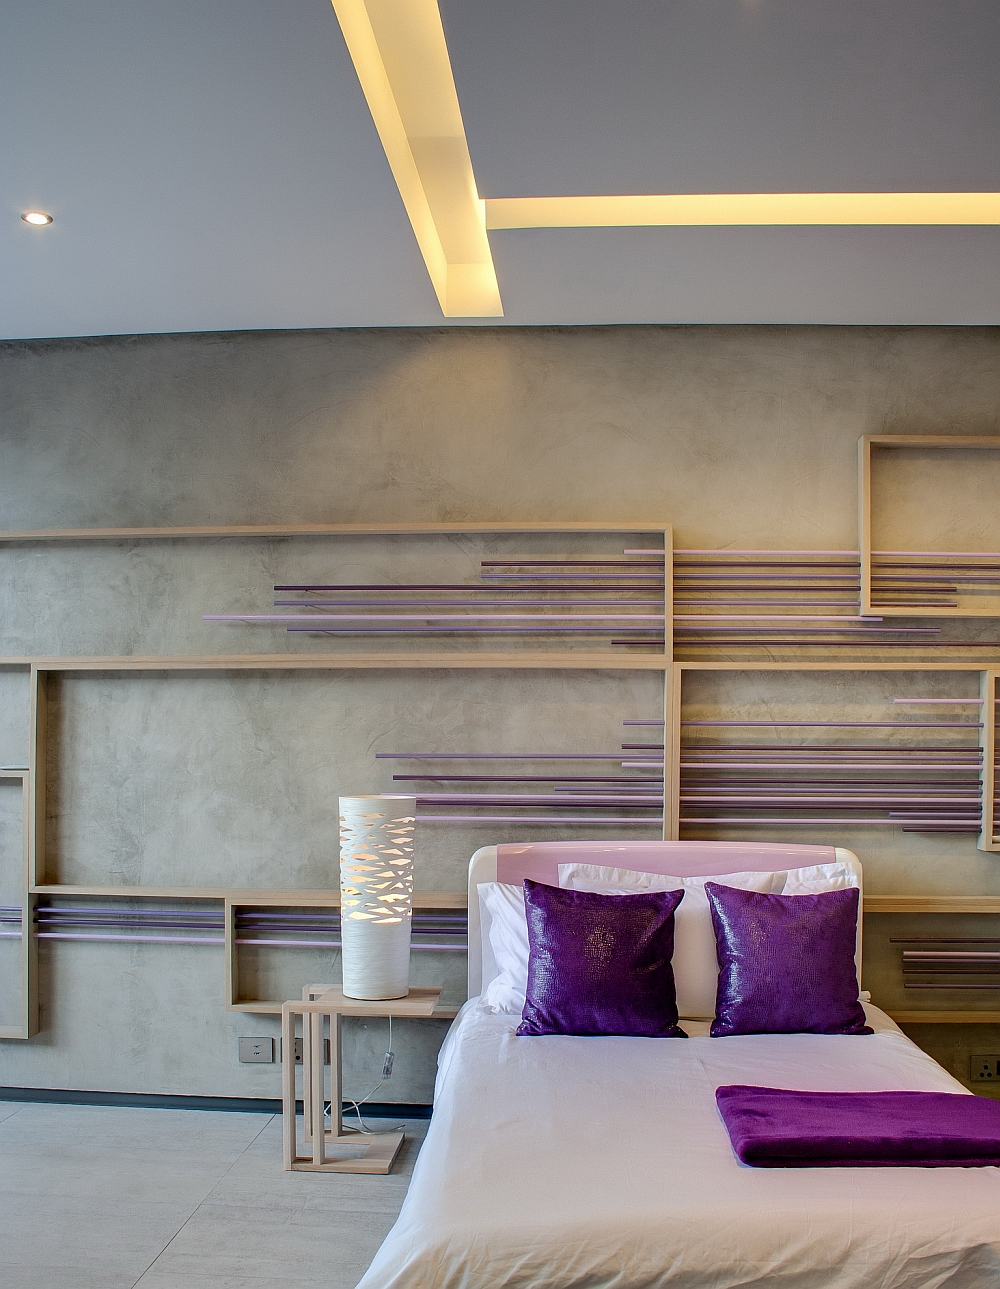 Elegant use of purple in the cozy bedroom